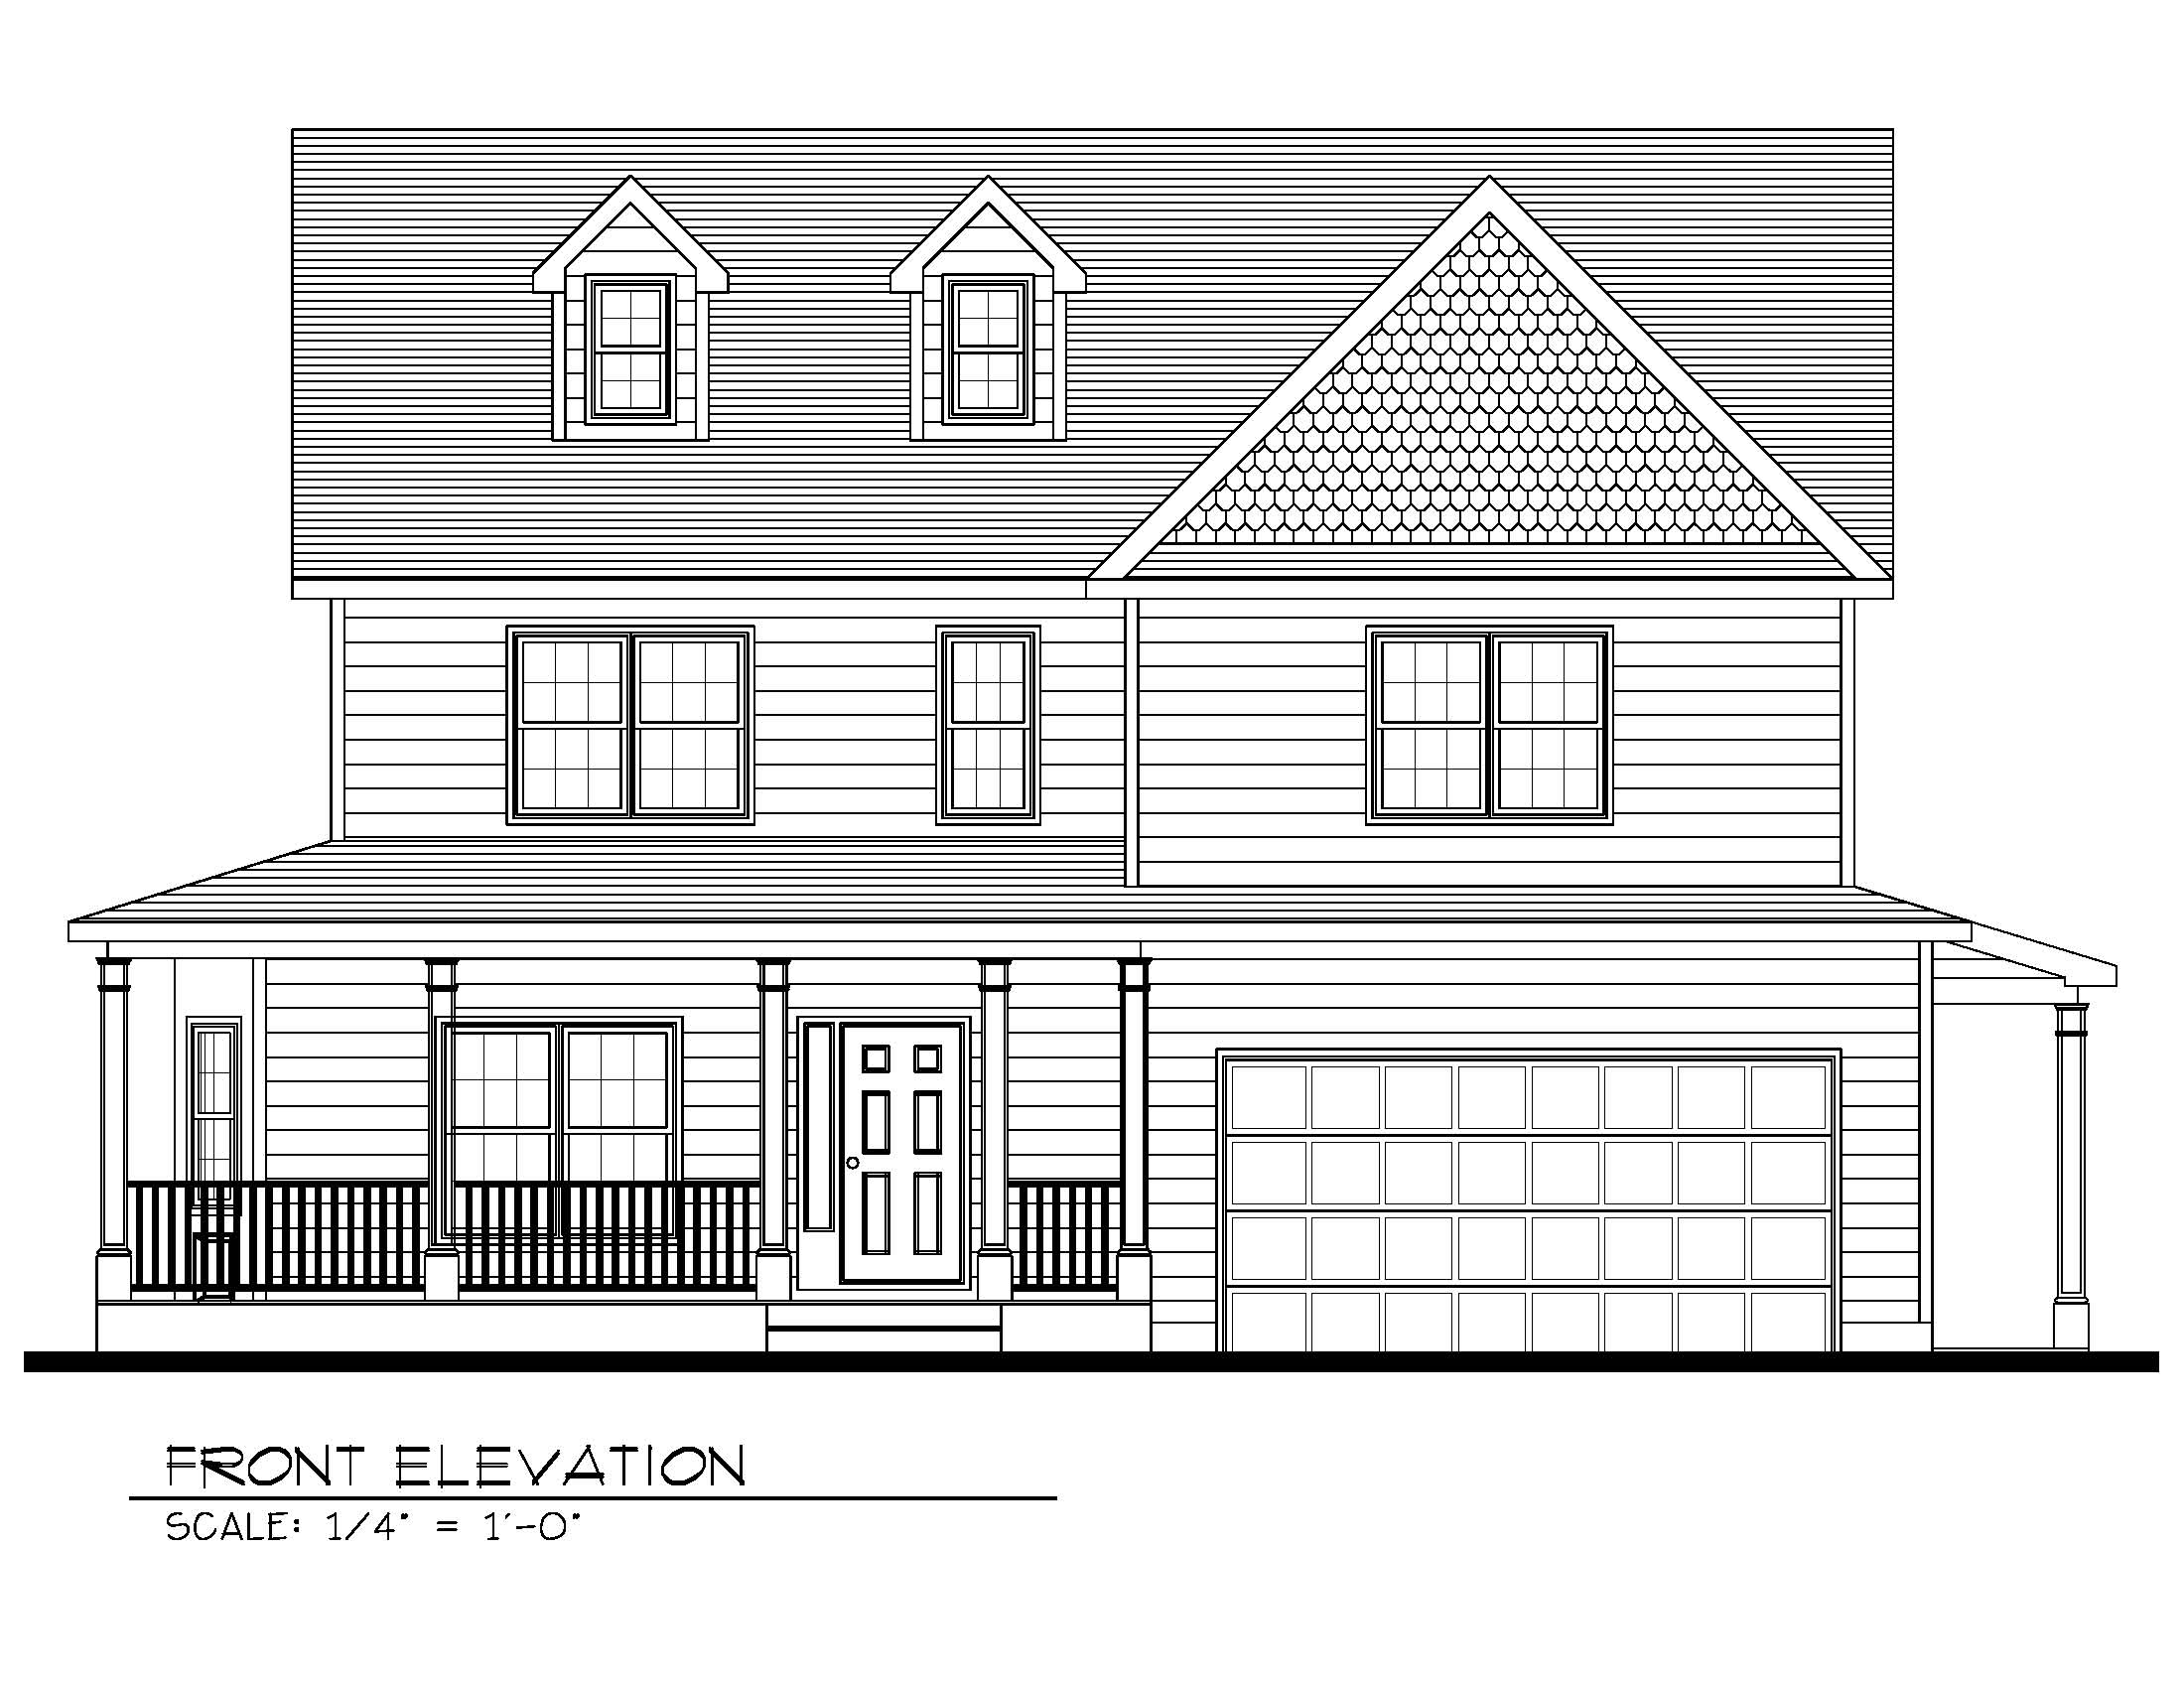 443 Beechwood Front Elevation